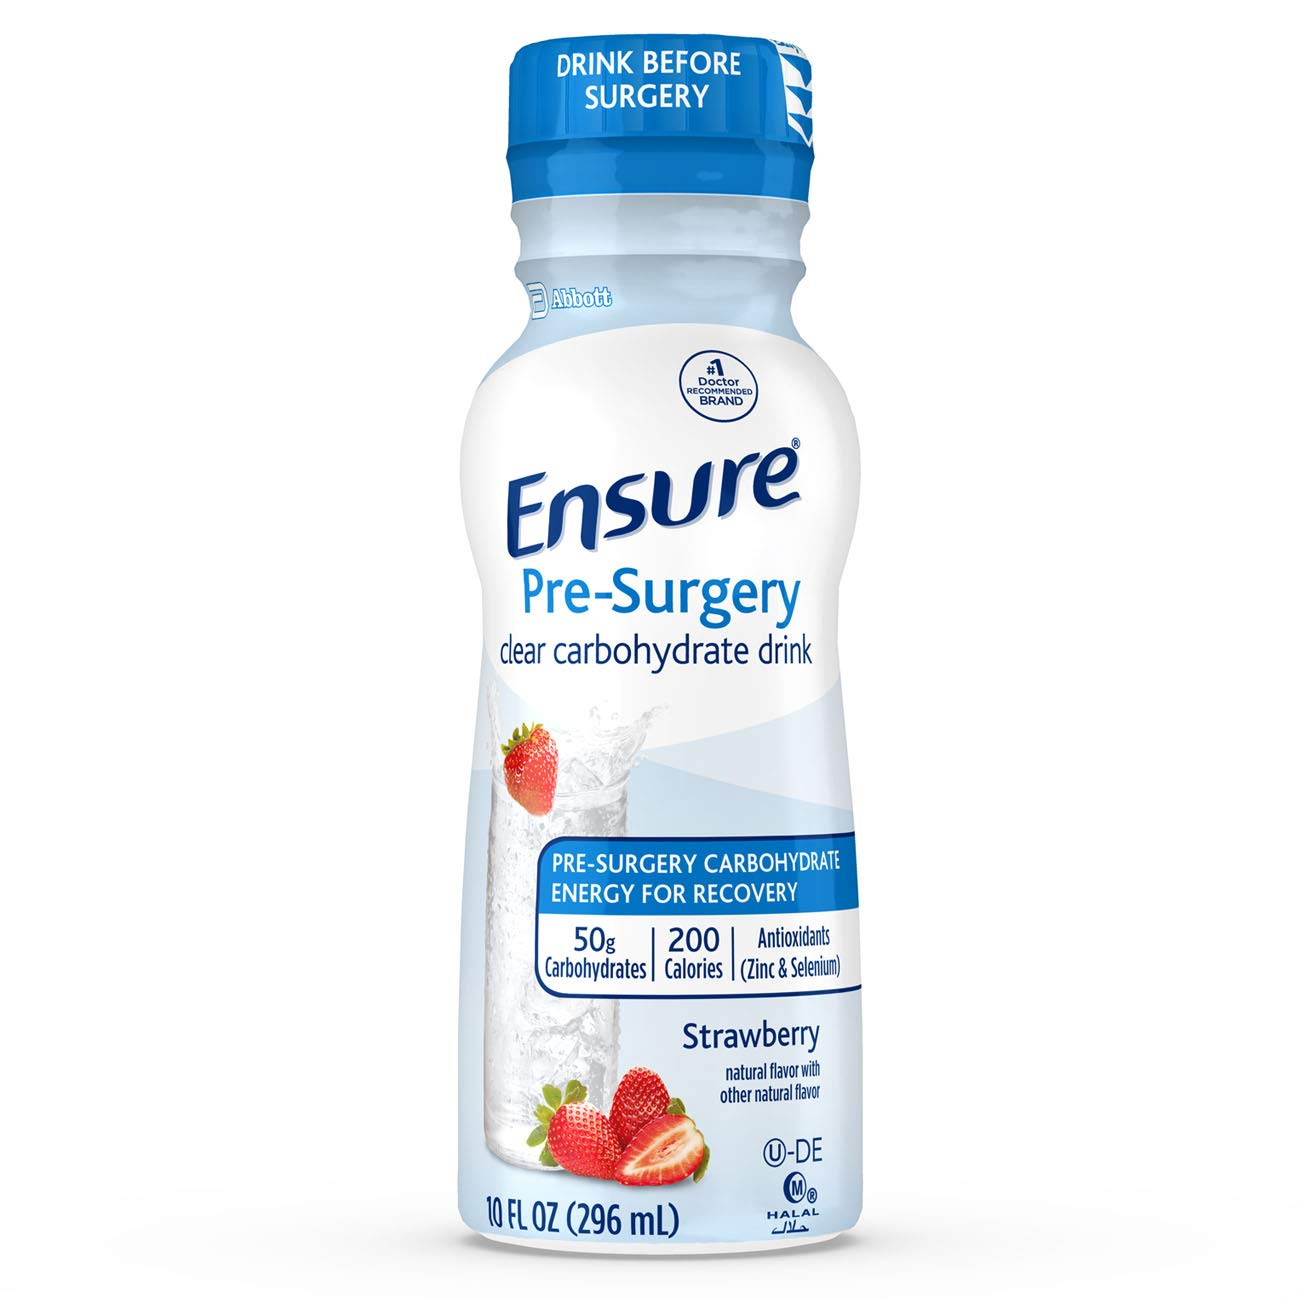 Ensure Pre-Surgery, Clear Carbohydrate Drink, Strawberry, 10 FL OZ, 4 Count by Ensure Surgery